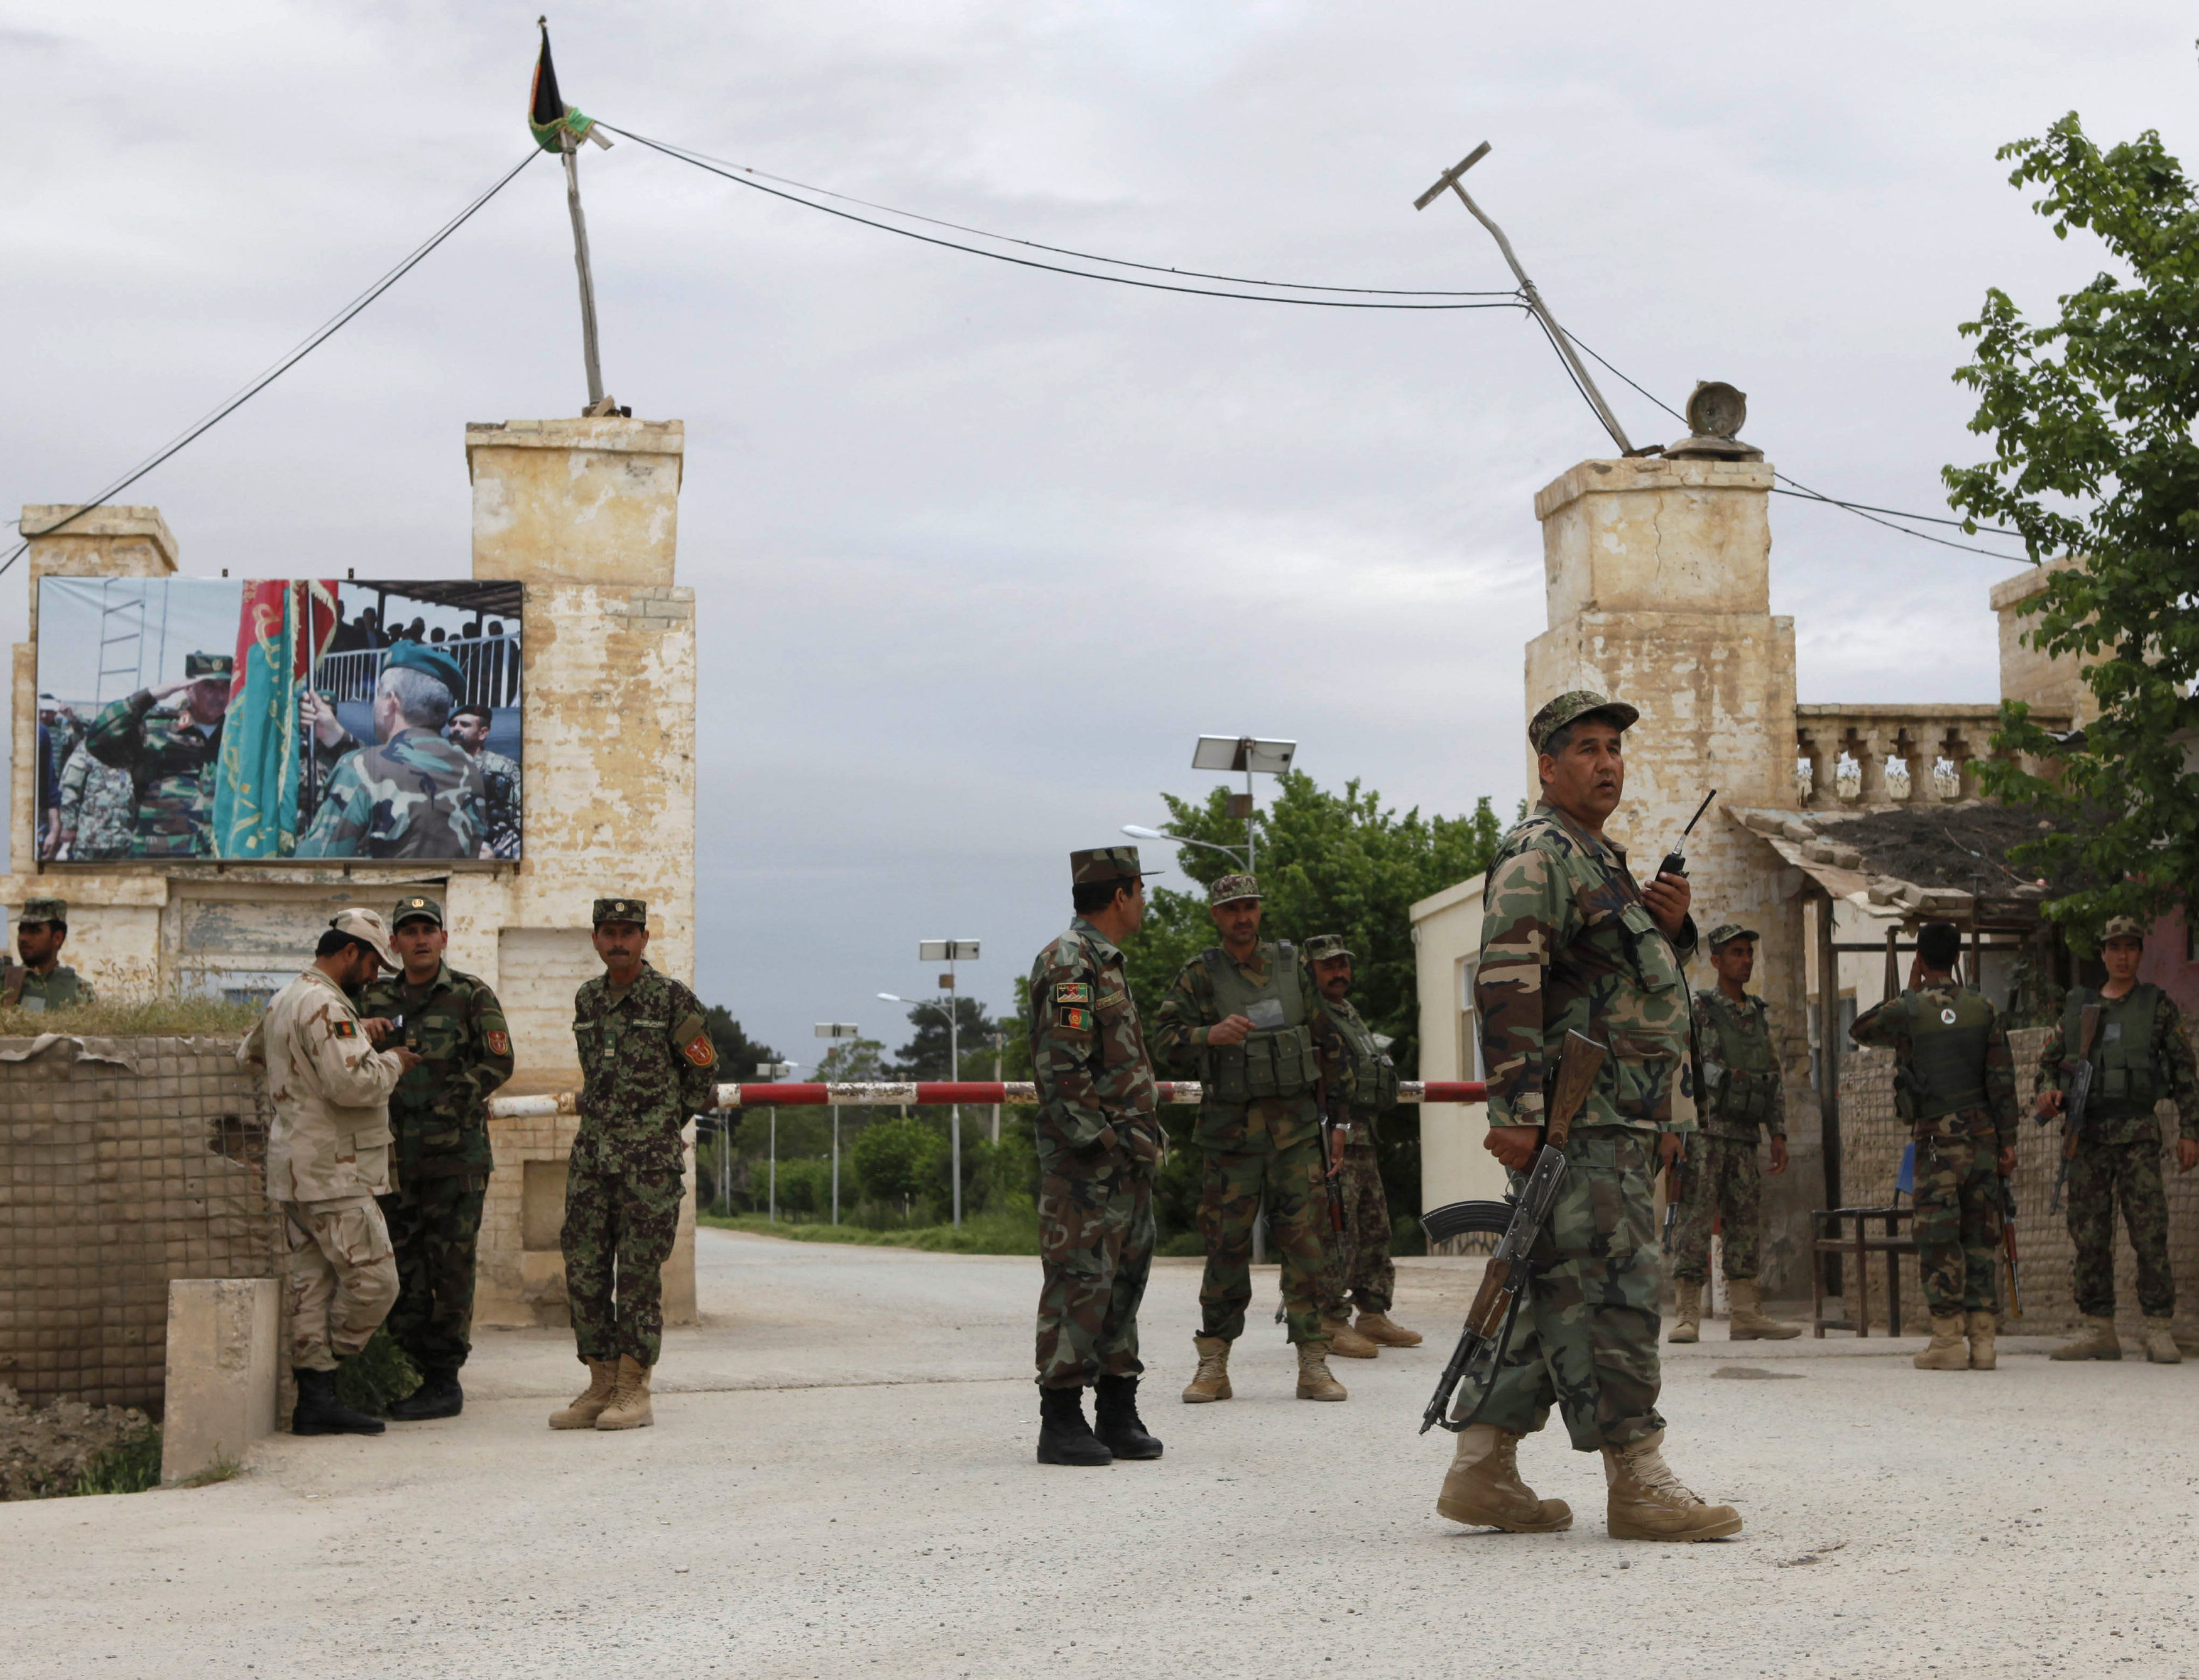 Taliban attackers kill at least 140 soldiers at Afghan base